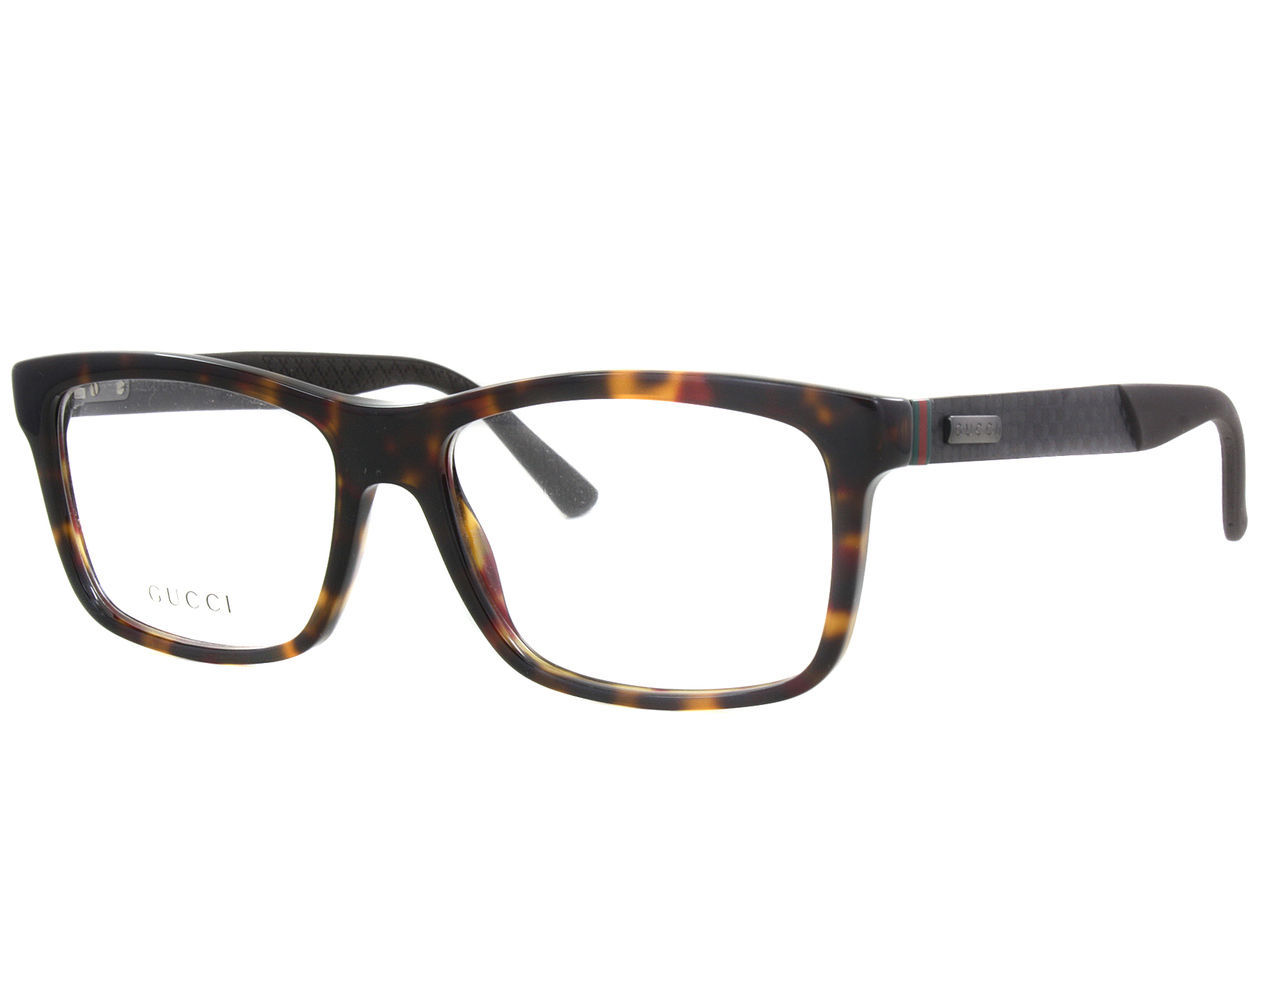 c4407bf72a1c4 Brand new Authentic Gucci GG1045 N 59W Havana eyeglasses frame 55-16-145mm  -  199.00